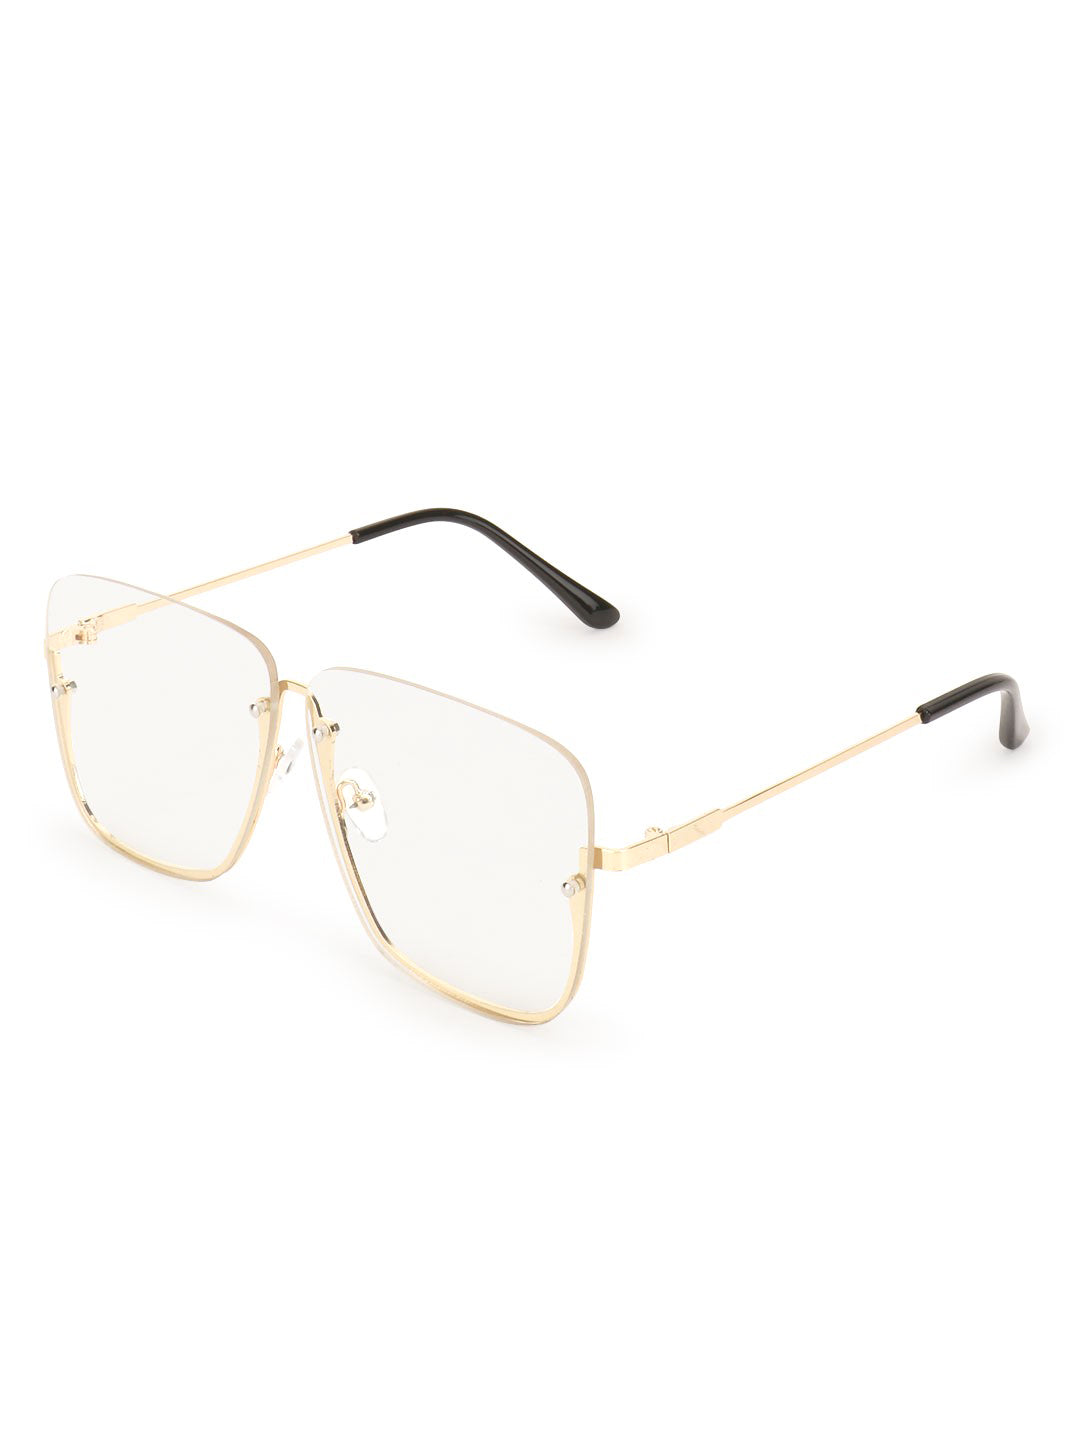 ffee637ef6 Transparent Square Clear Frames. Tap to expand